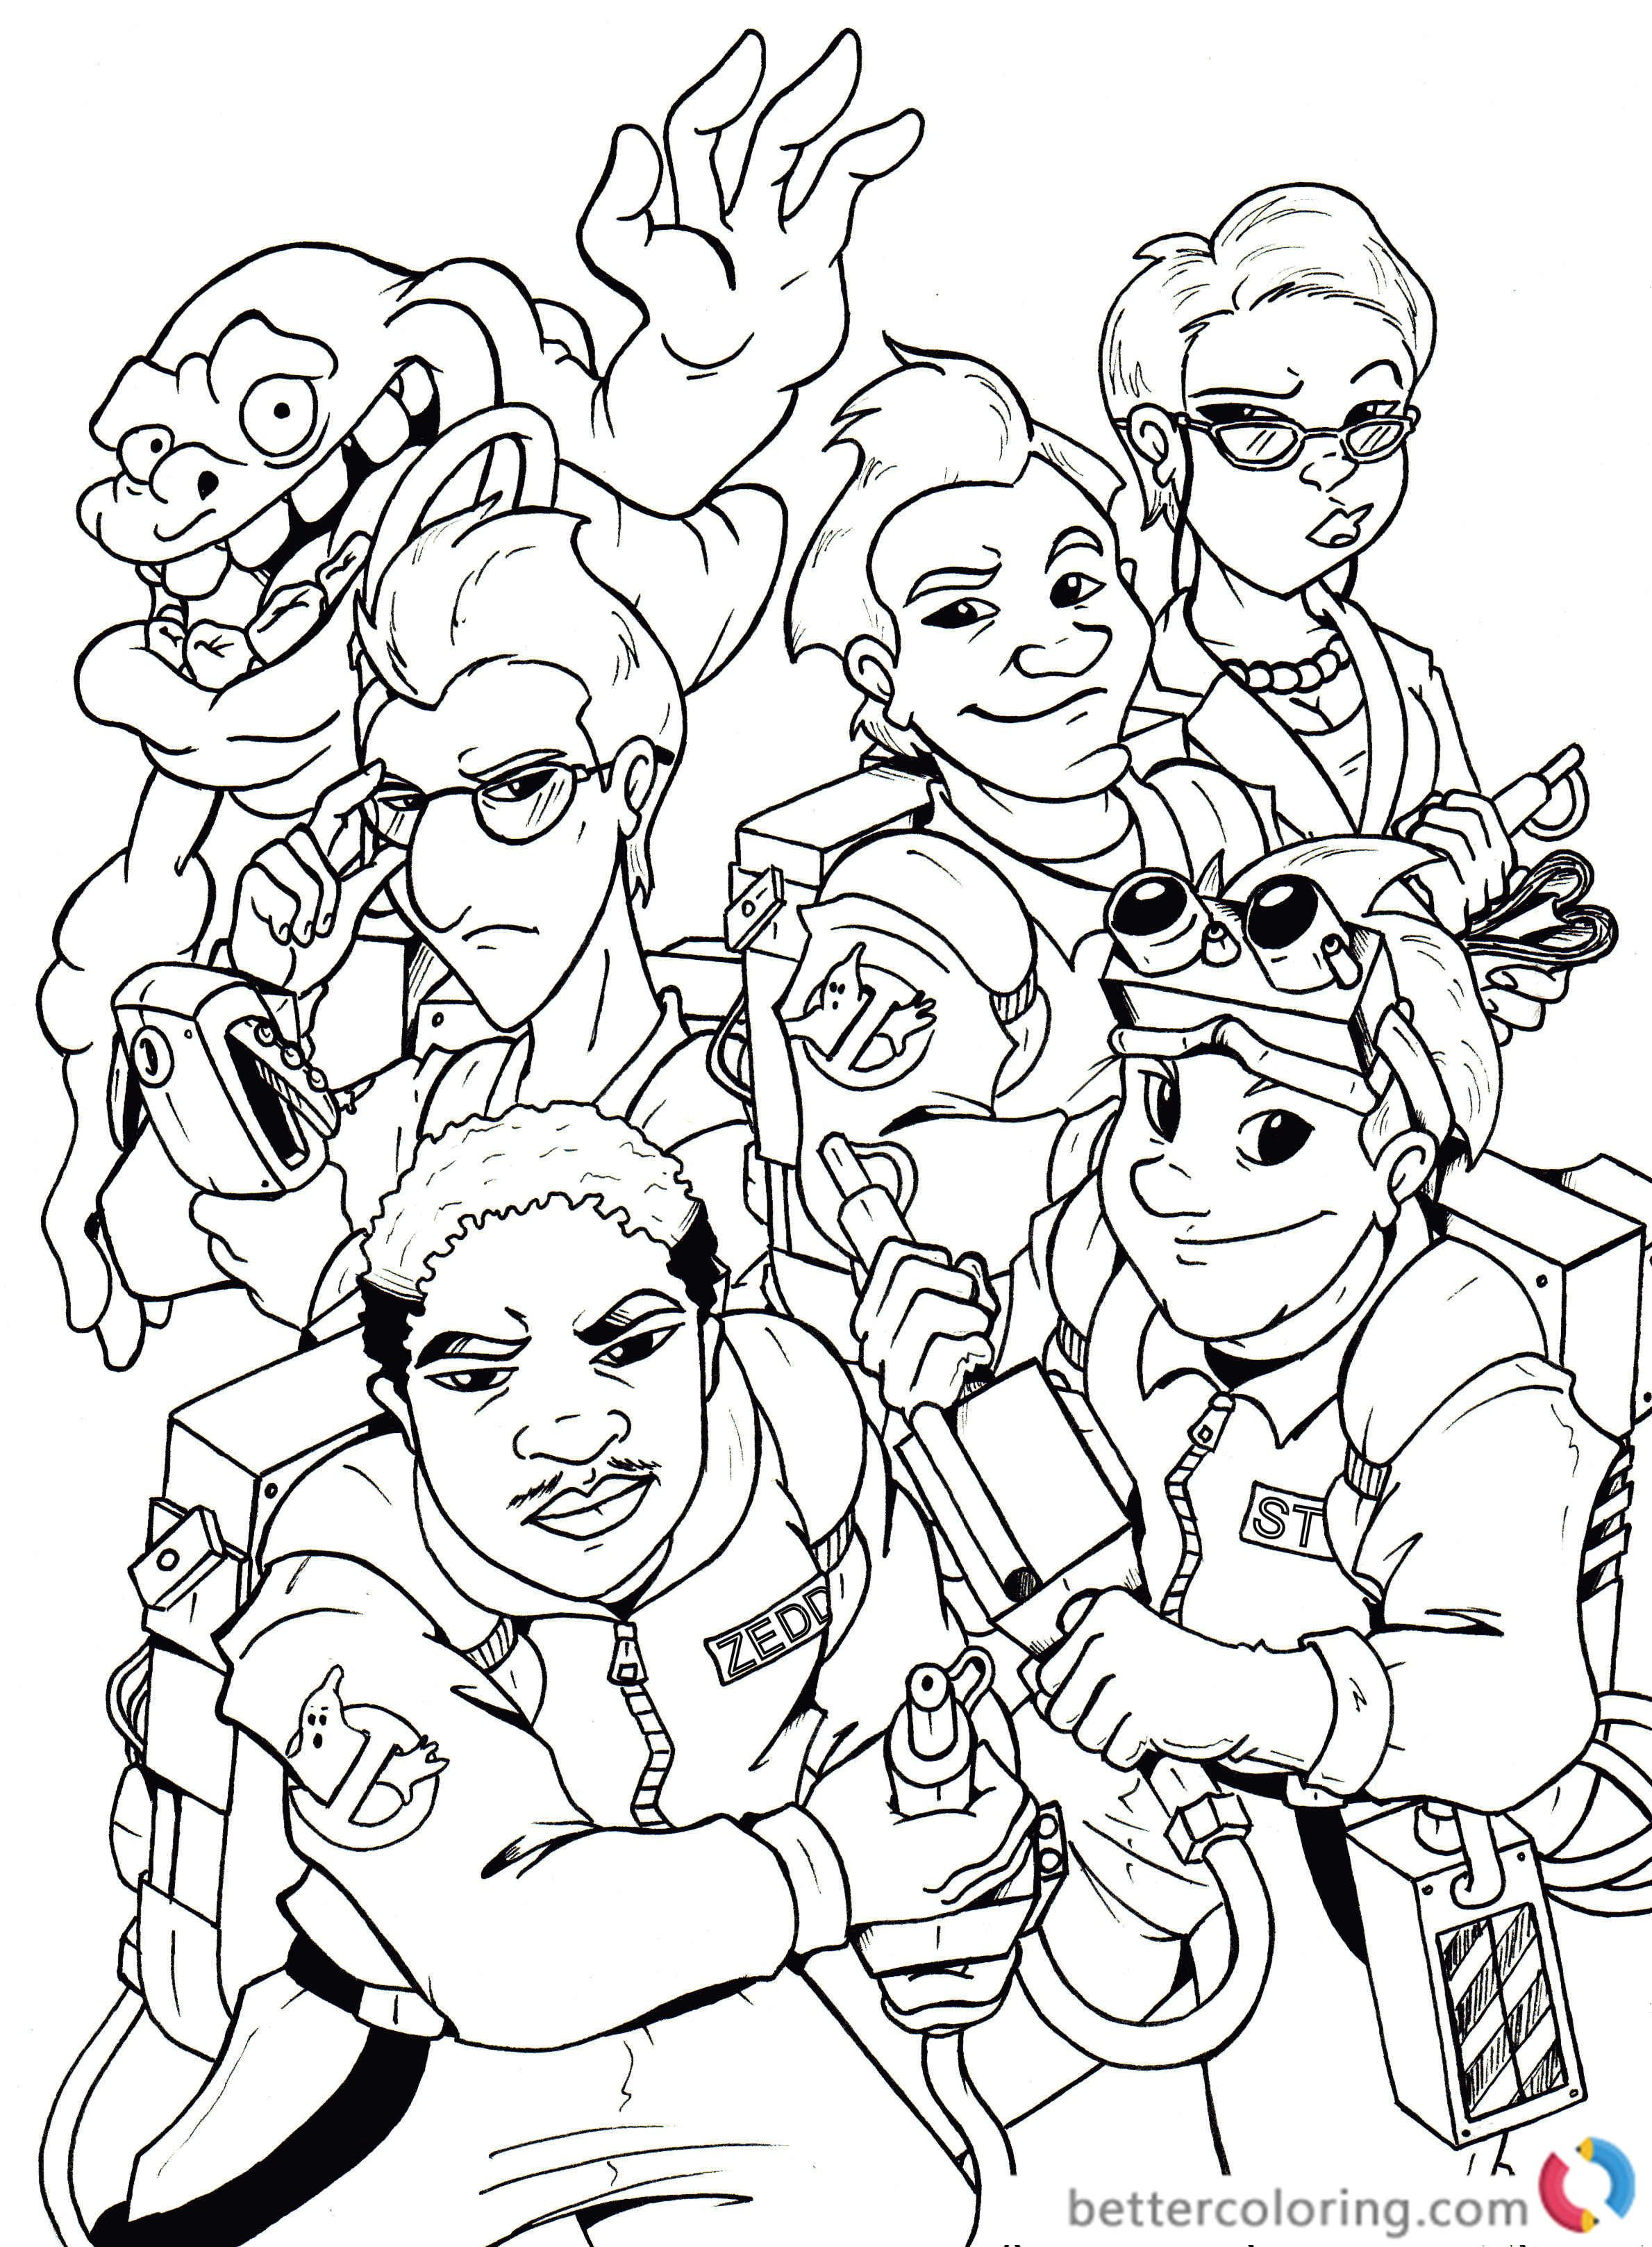 Free Ghostbusters Coloring Pages For Kids And Adults Coloring Pages Cartoon Coloring Pages Valentines Day Coloring Page